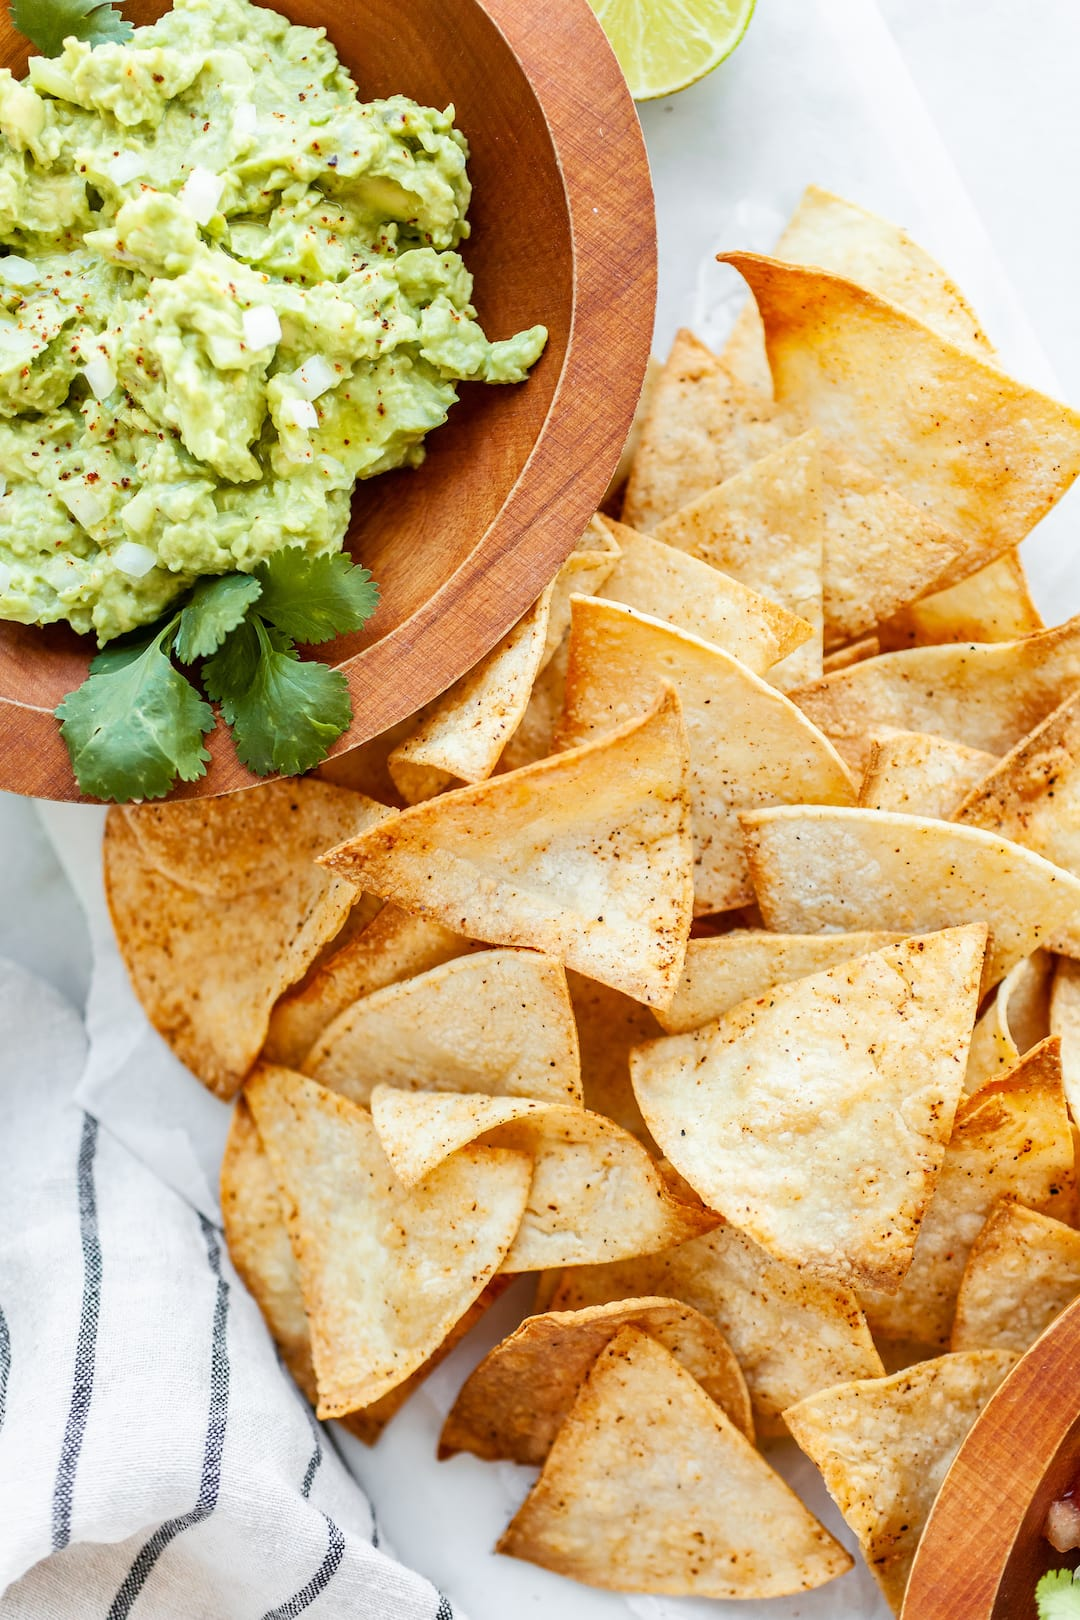 AIr fryer tortilla chips with guacamole